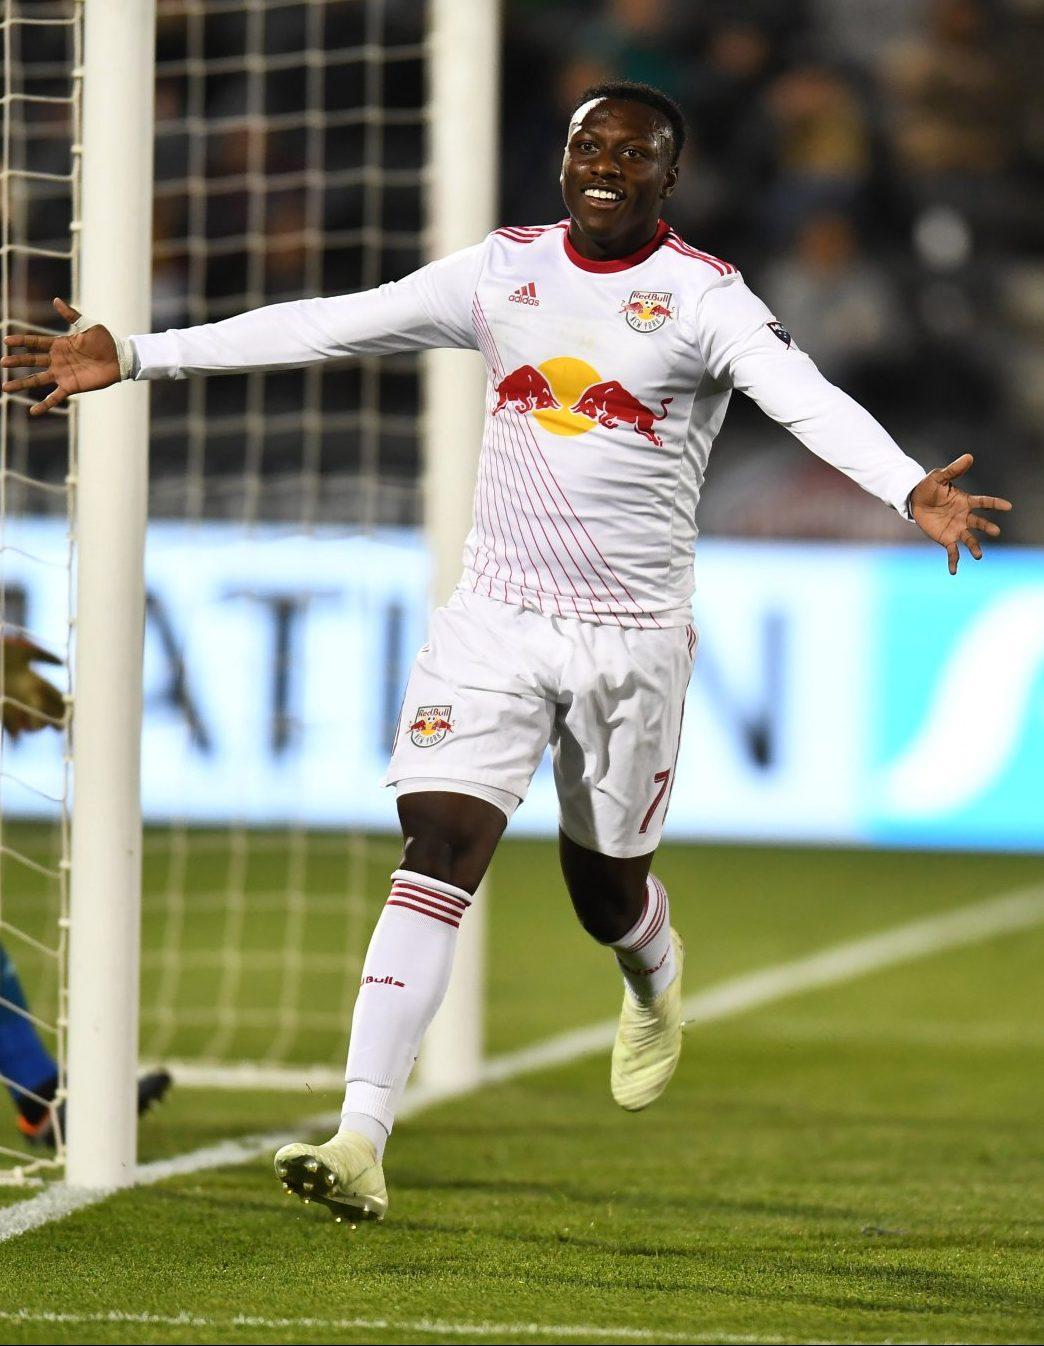 Derrick Etienne Jr. celebrates after scoring the game winning goal against the Colorado Rapids Saturday Night